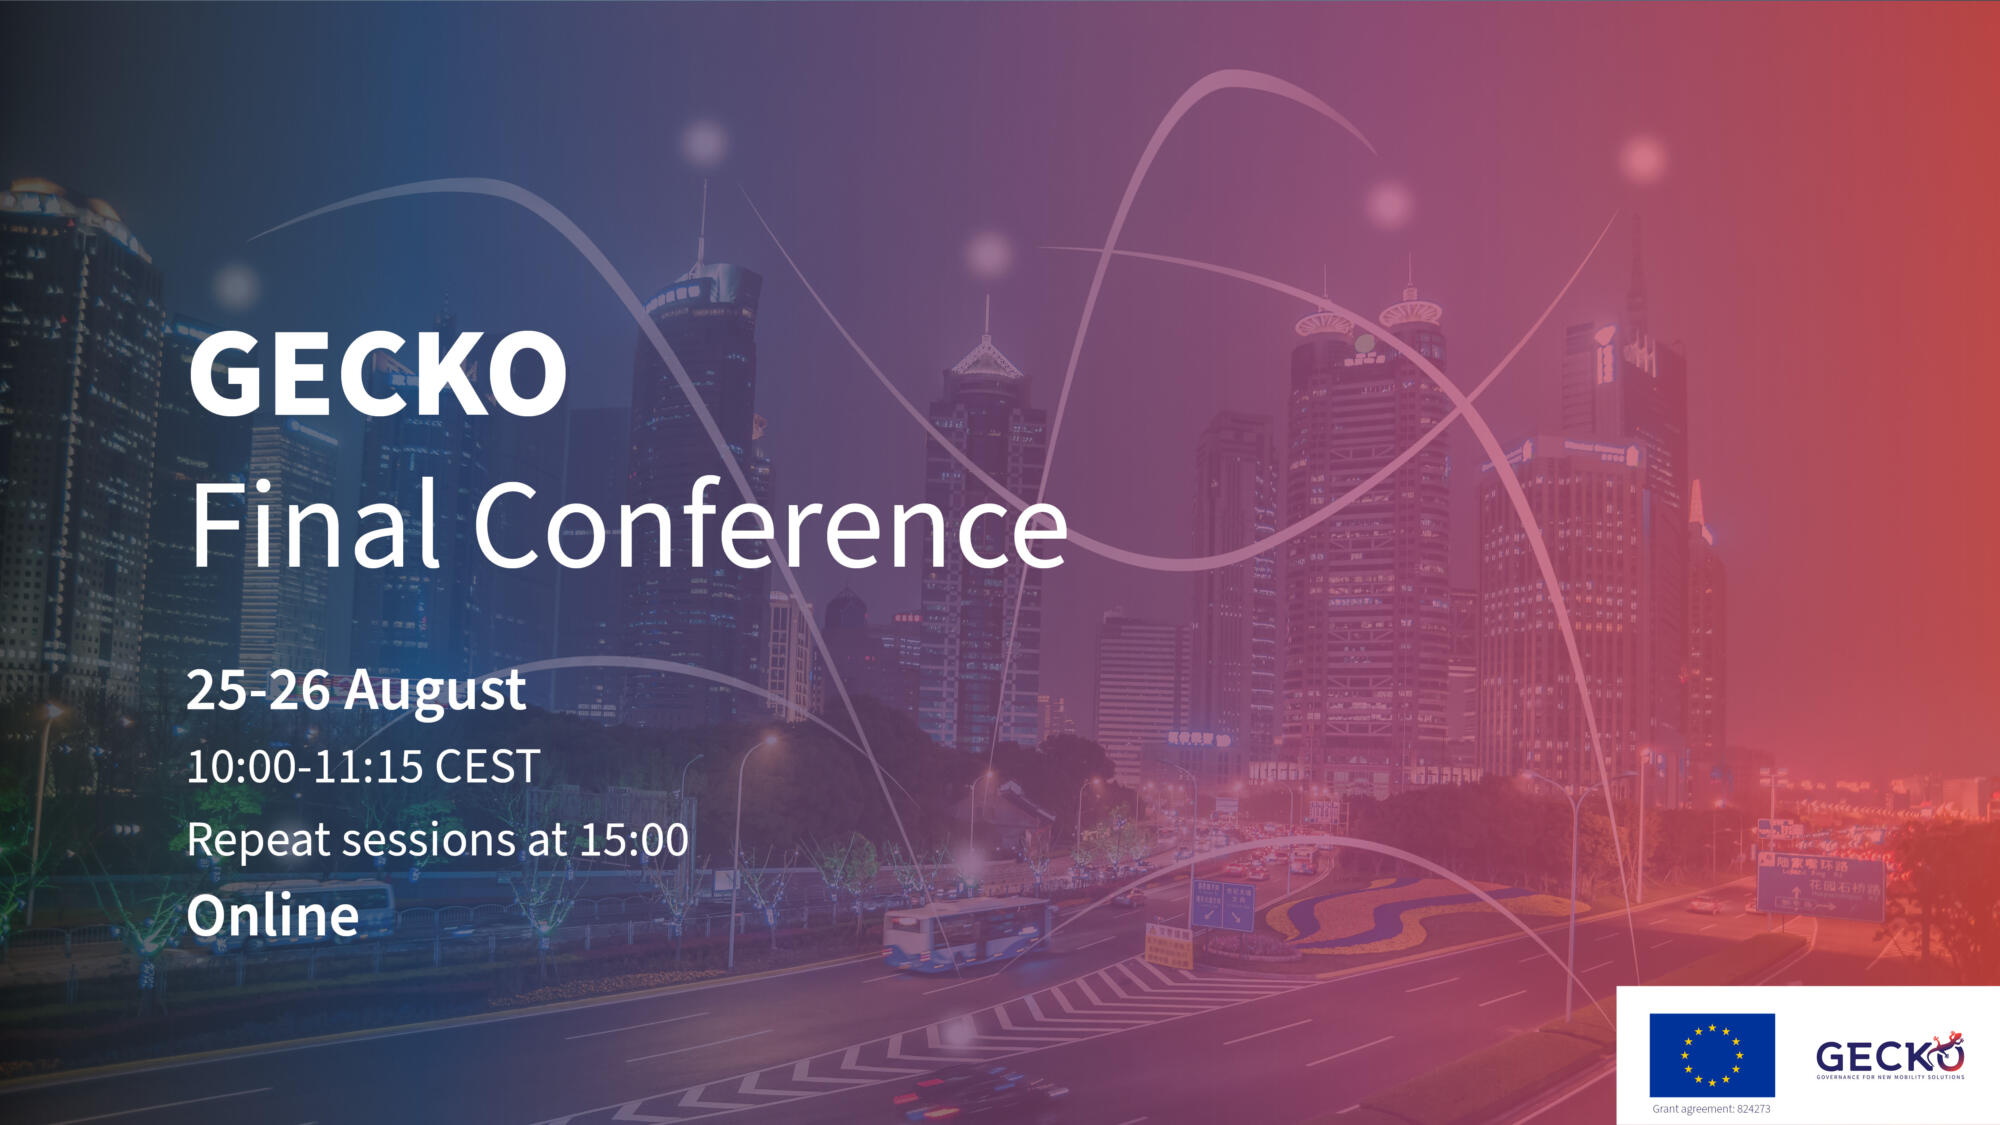 Transition to a new mobility era: join GECKO's final conference